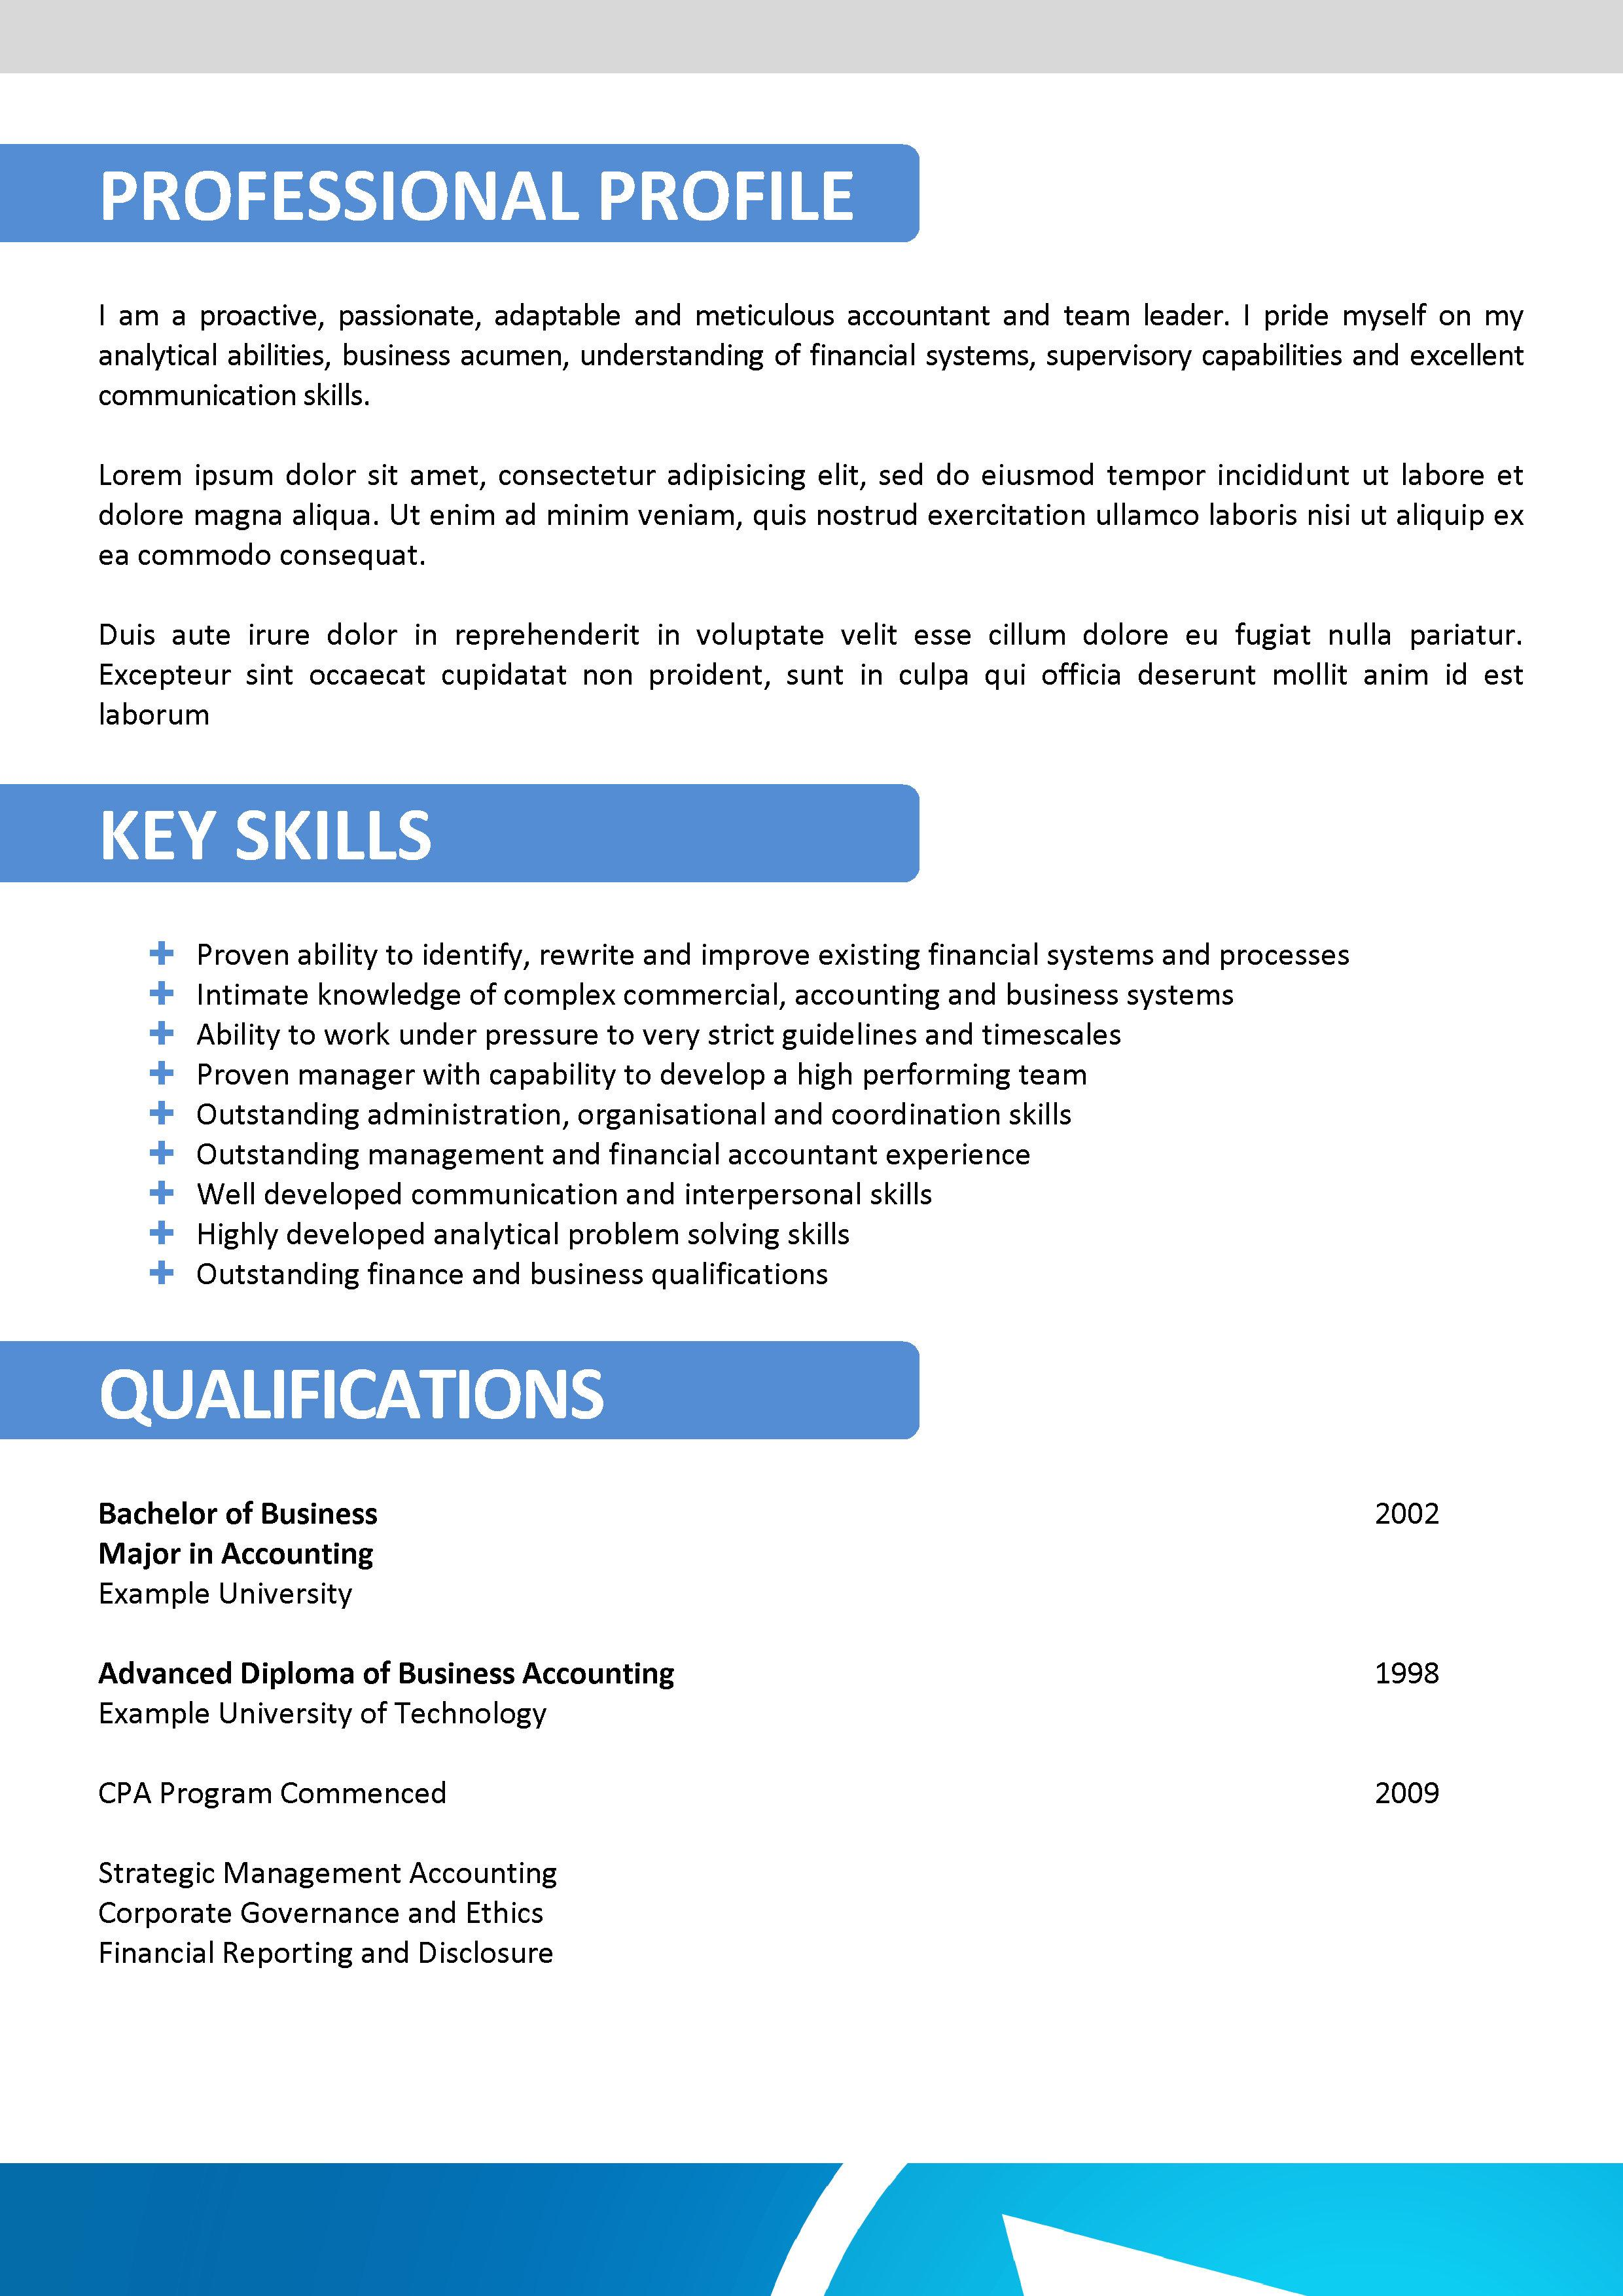 accounting resume for student best online resume builder accounting resume for student top tips to make your accounting resume rock accounting resume hospitality resumes